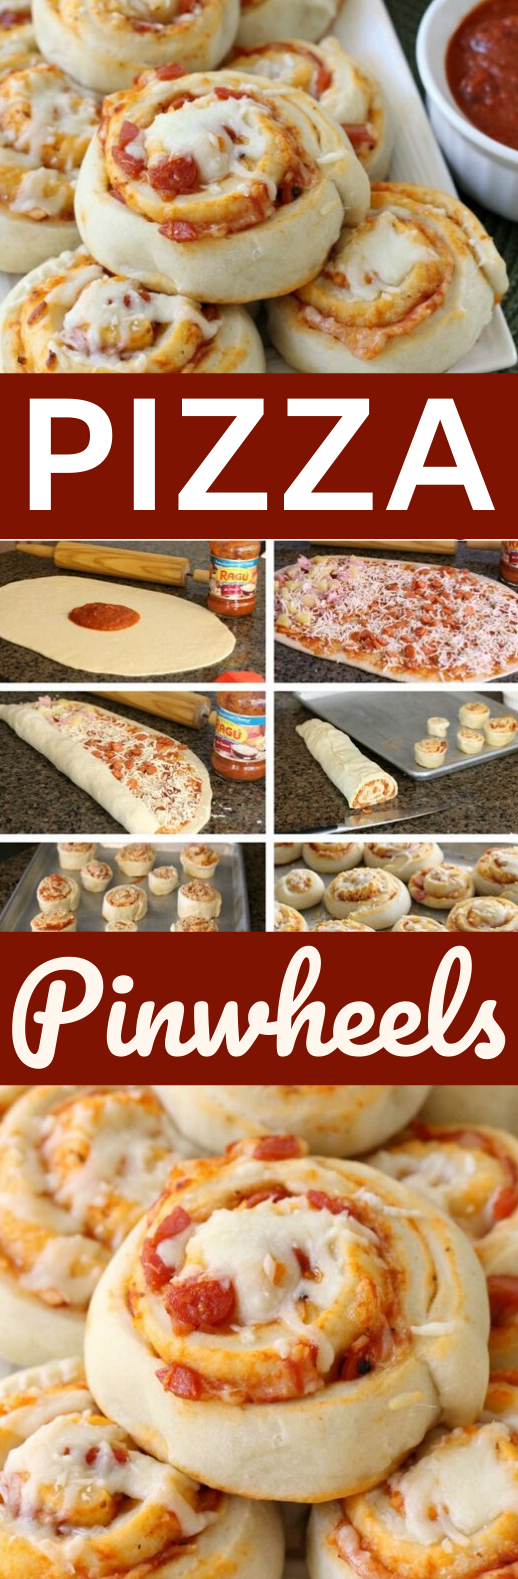 Pizza Pinwheels #dinner #appetizers #partyfood #recipes #lunch